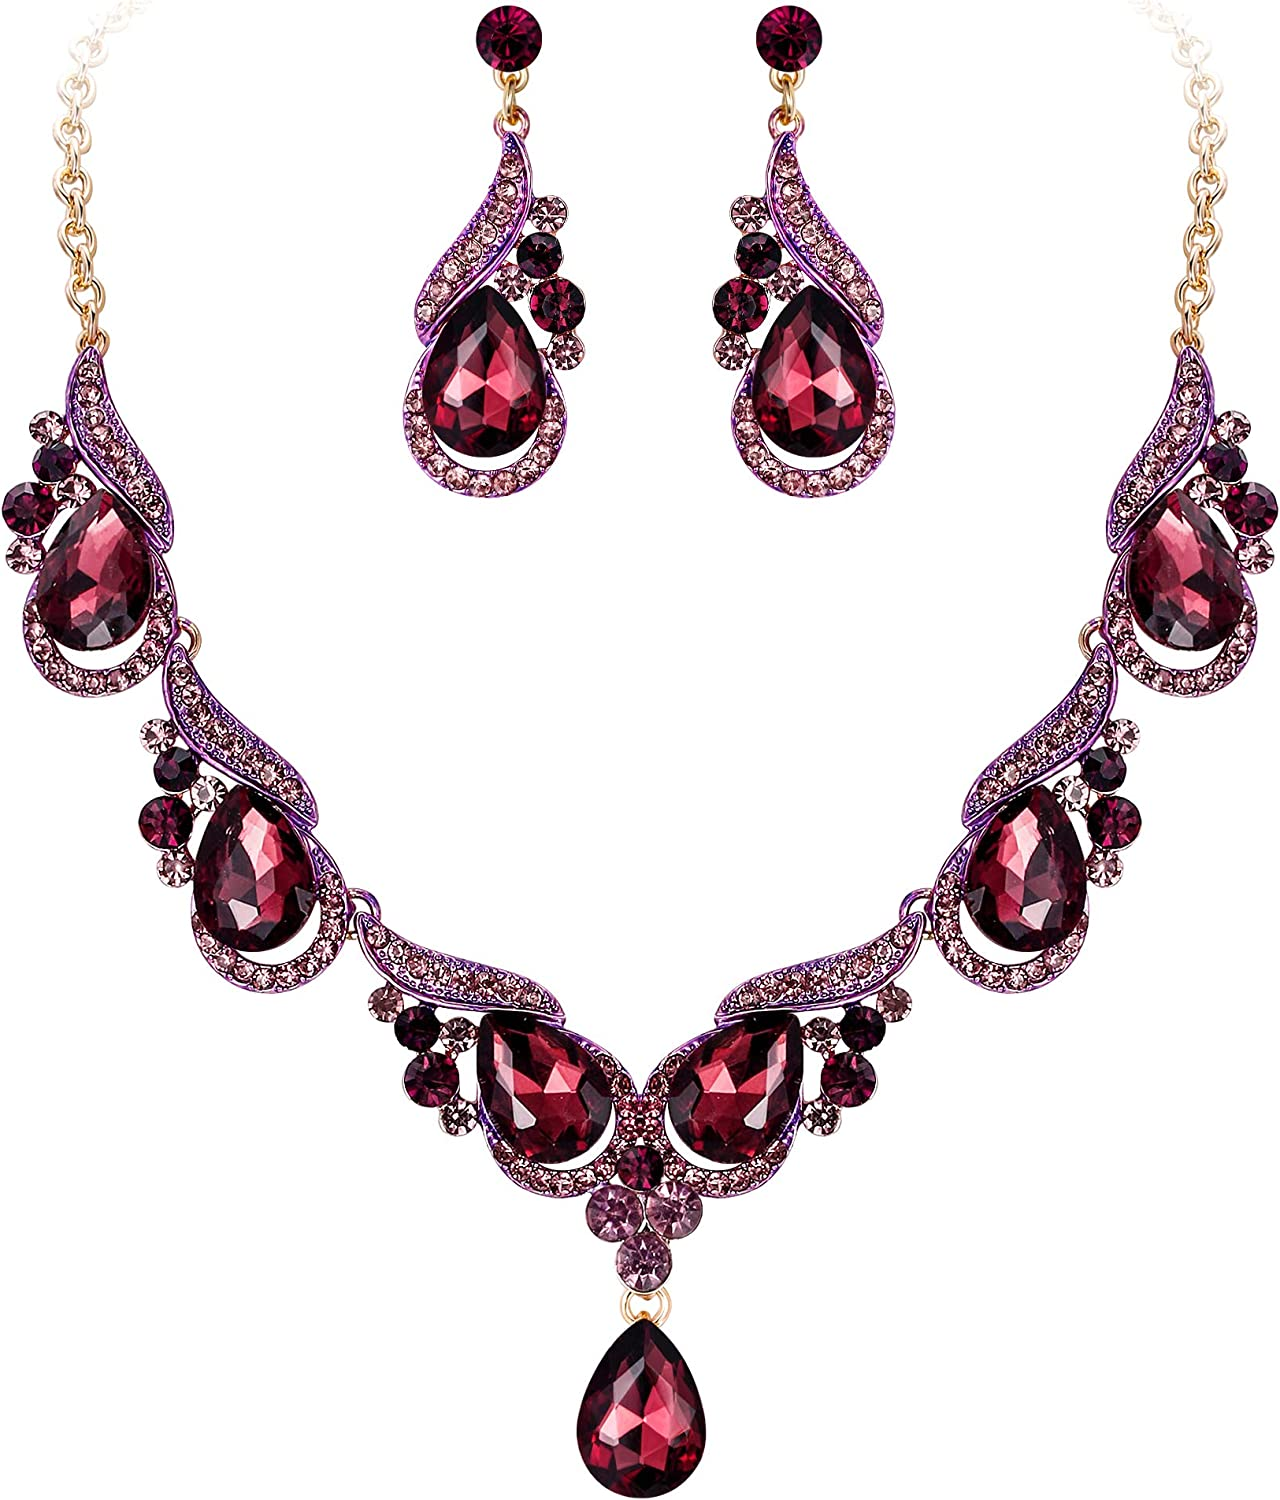 EVER FAITH Women's Wedding Jewelry Crystal Luxury Floral Wave Spindrift Waterdrop Necklace Earrings Set